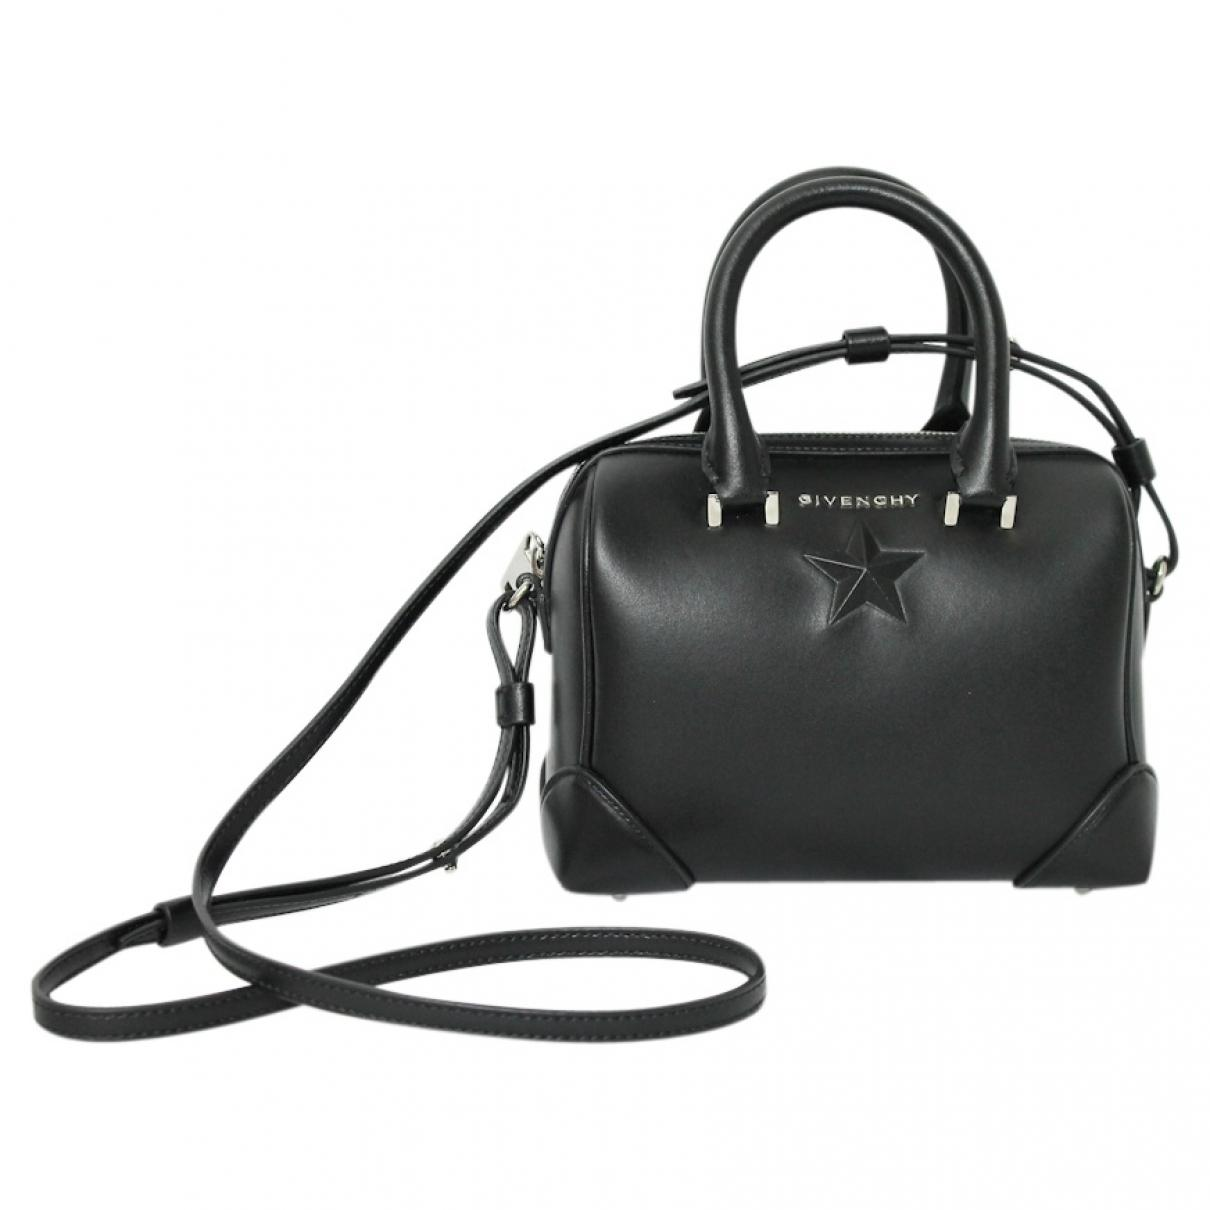 b8daa5588850 Givenchy Pre-owned Black Leather Handbags in Black - Lyst